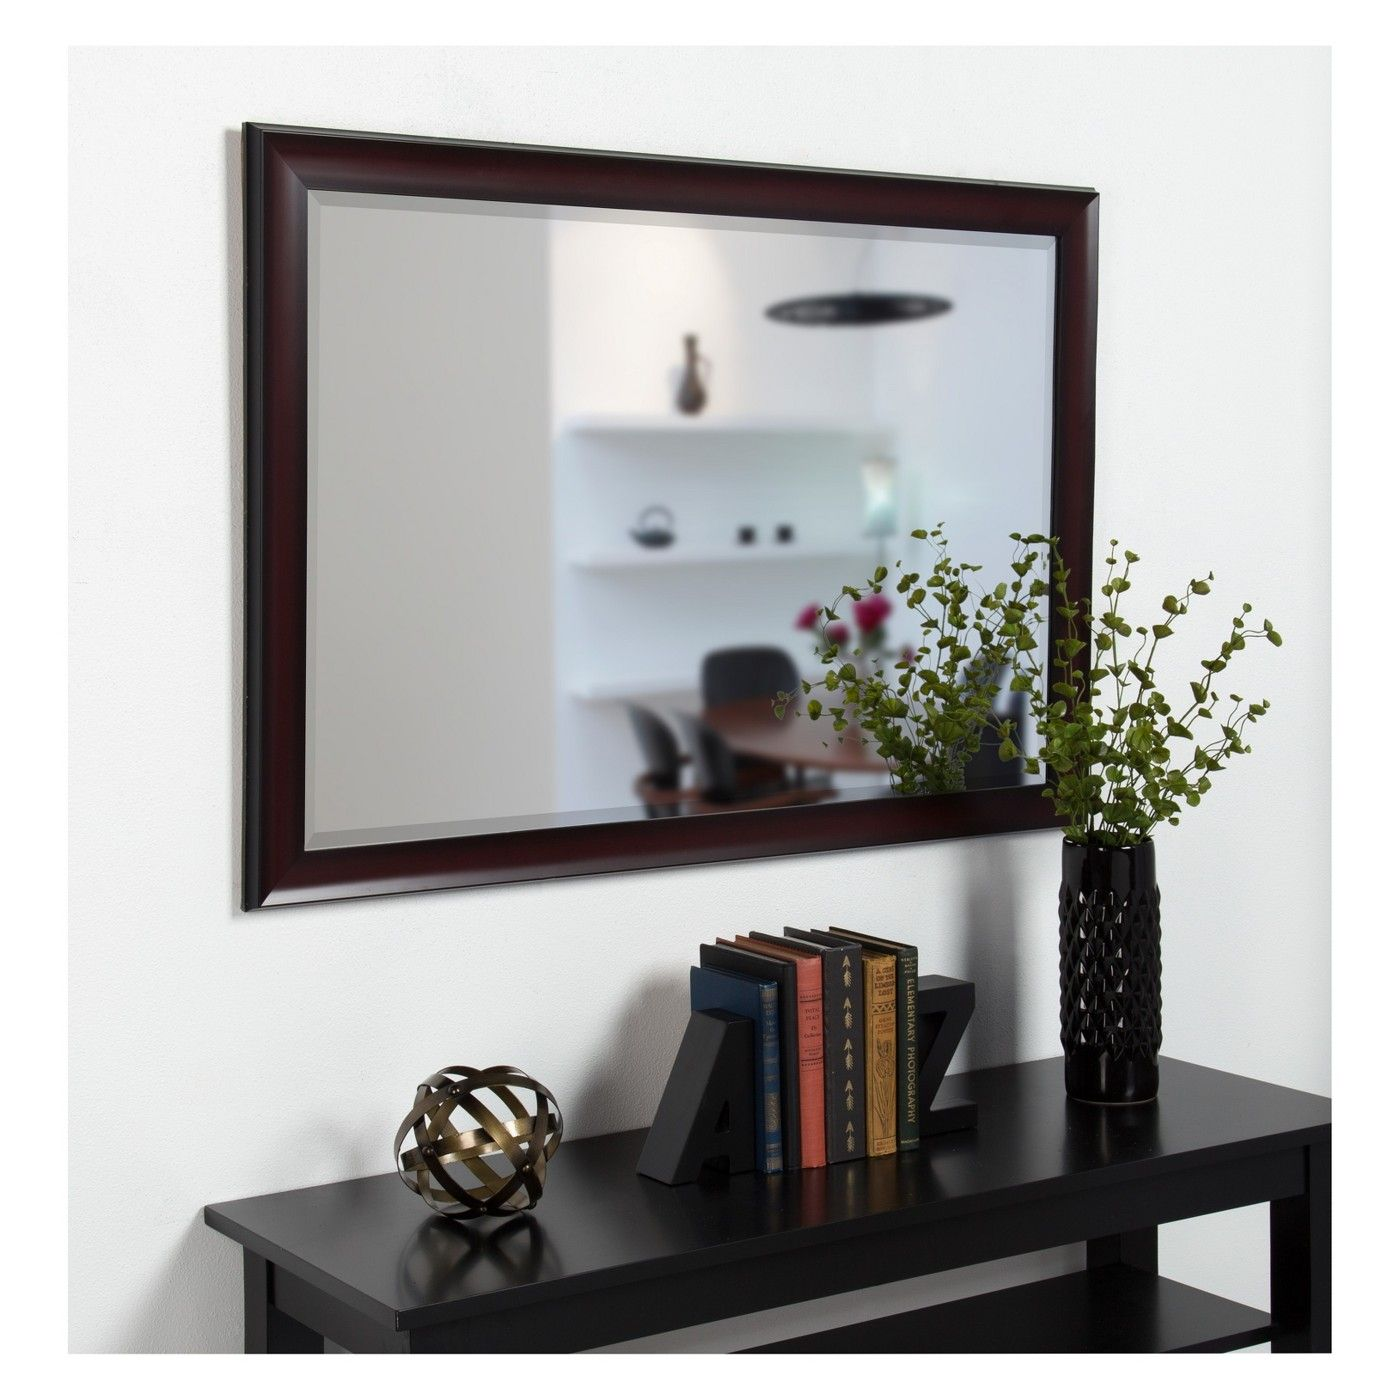 Kate & Laurel 28X40 Scoop Framed Beveled Decorative Wall Mirror